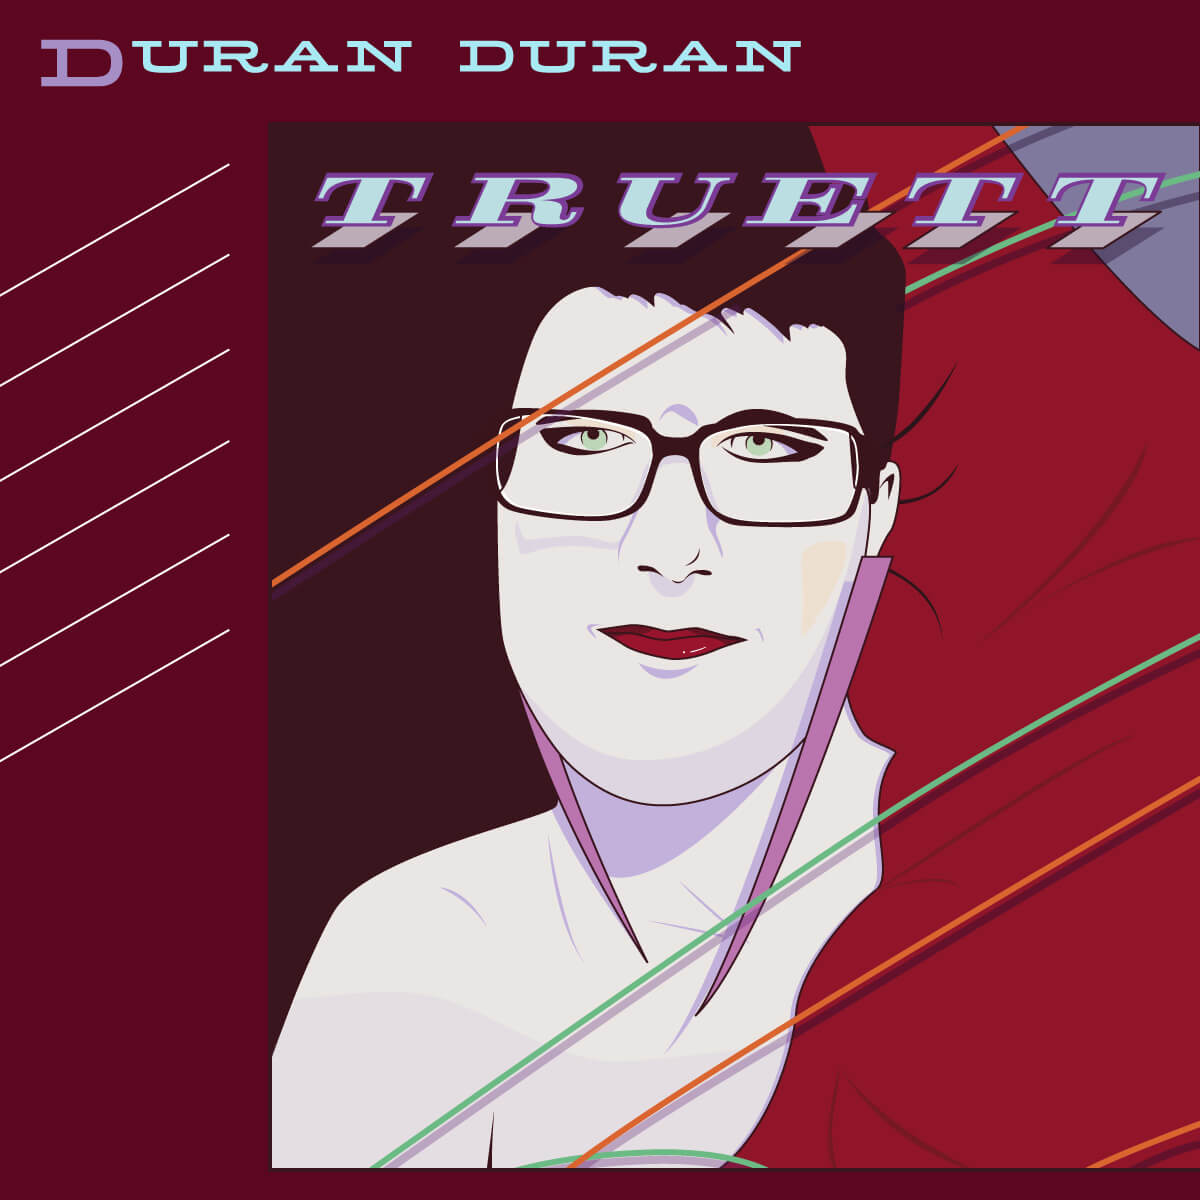 an illustration of my friend Truett in the style of Duran Duran's Rio album cover